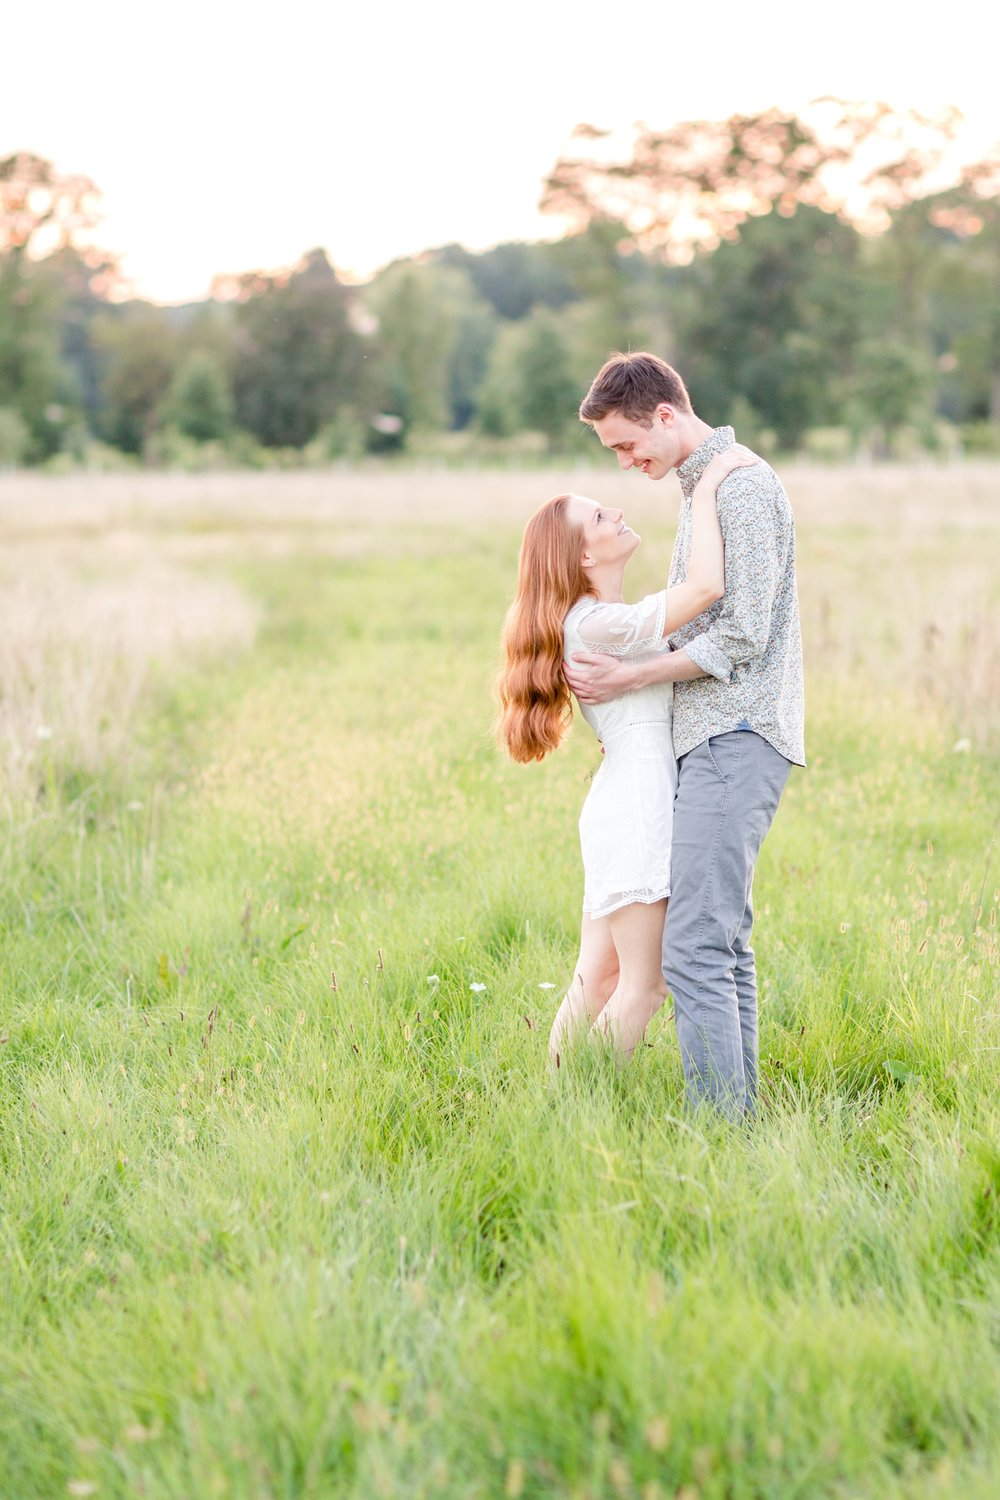 Jessica & Leo Engagement-176_Maryland-Agricultural-Resource-Center-engagement-photographer-anna-grace-photography-photo.jpg